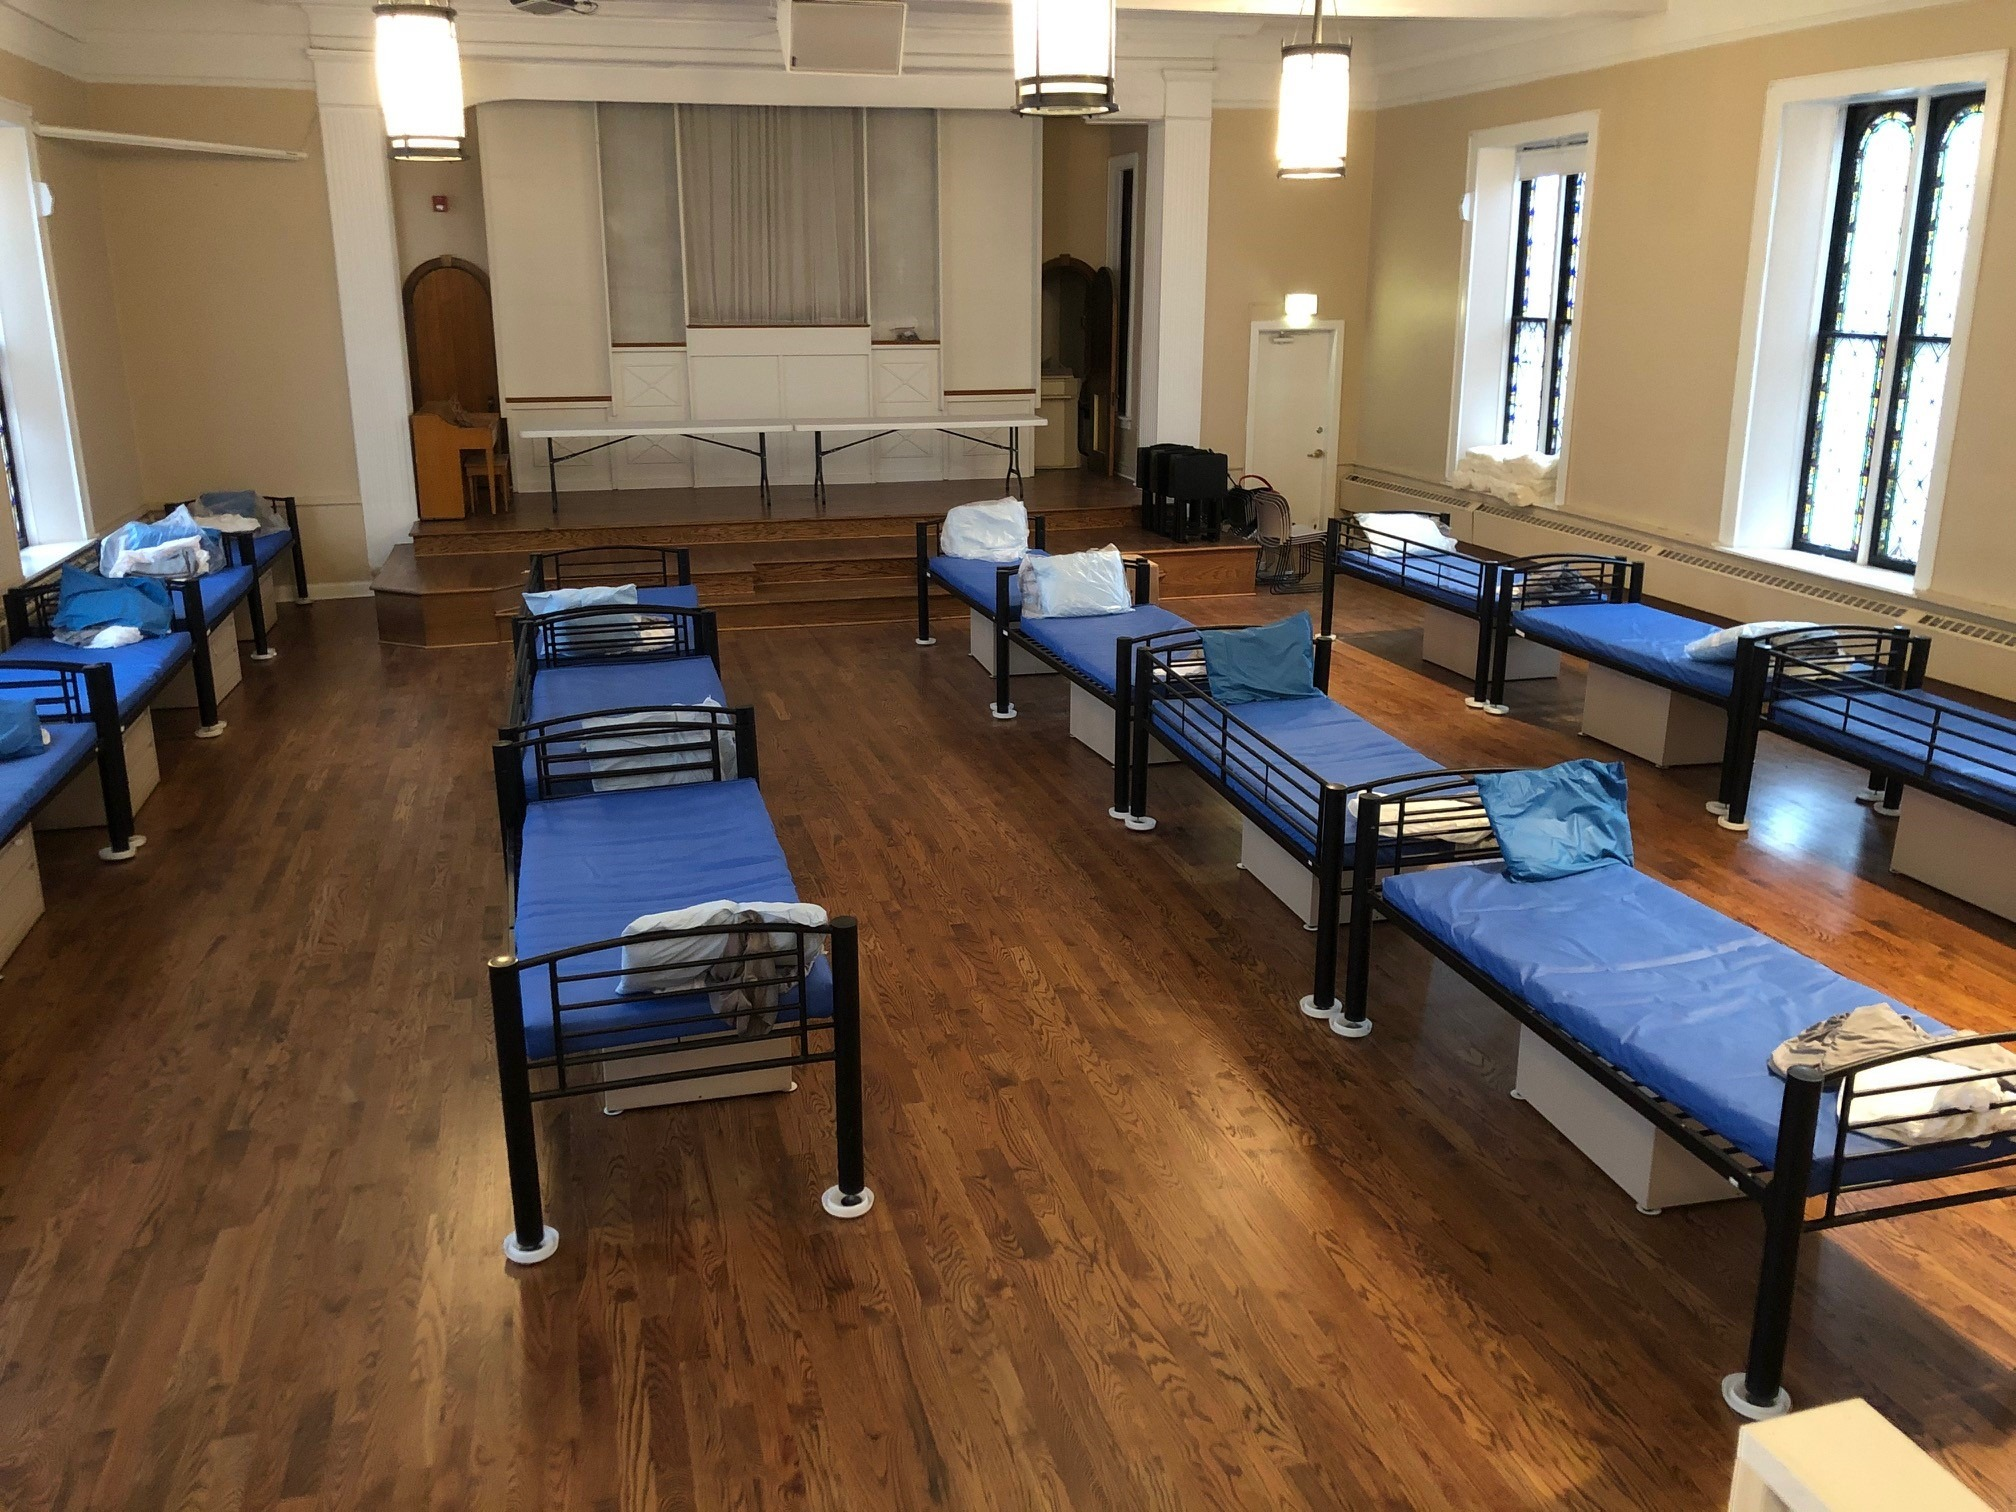 Room full of evenly spaced blue cots